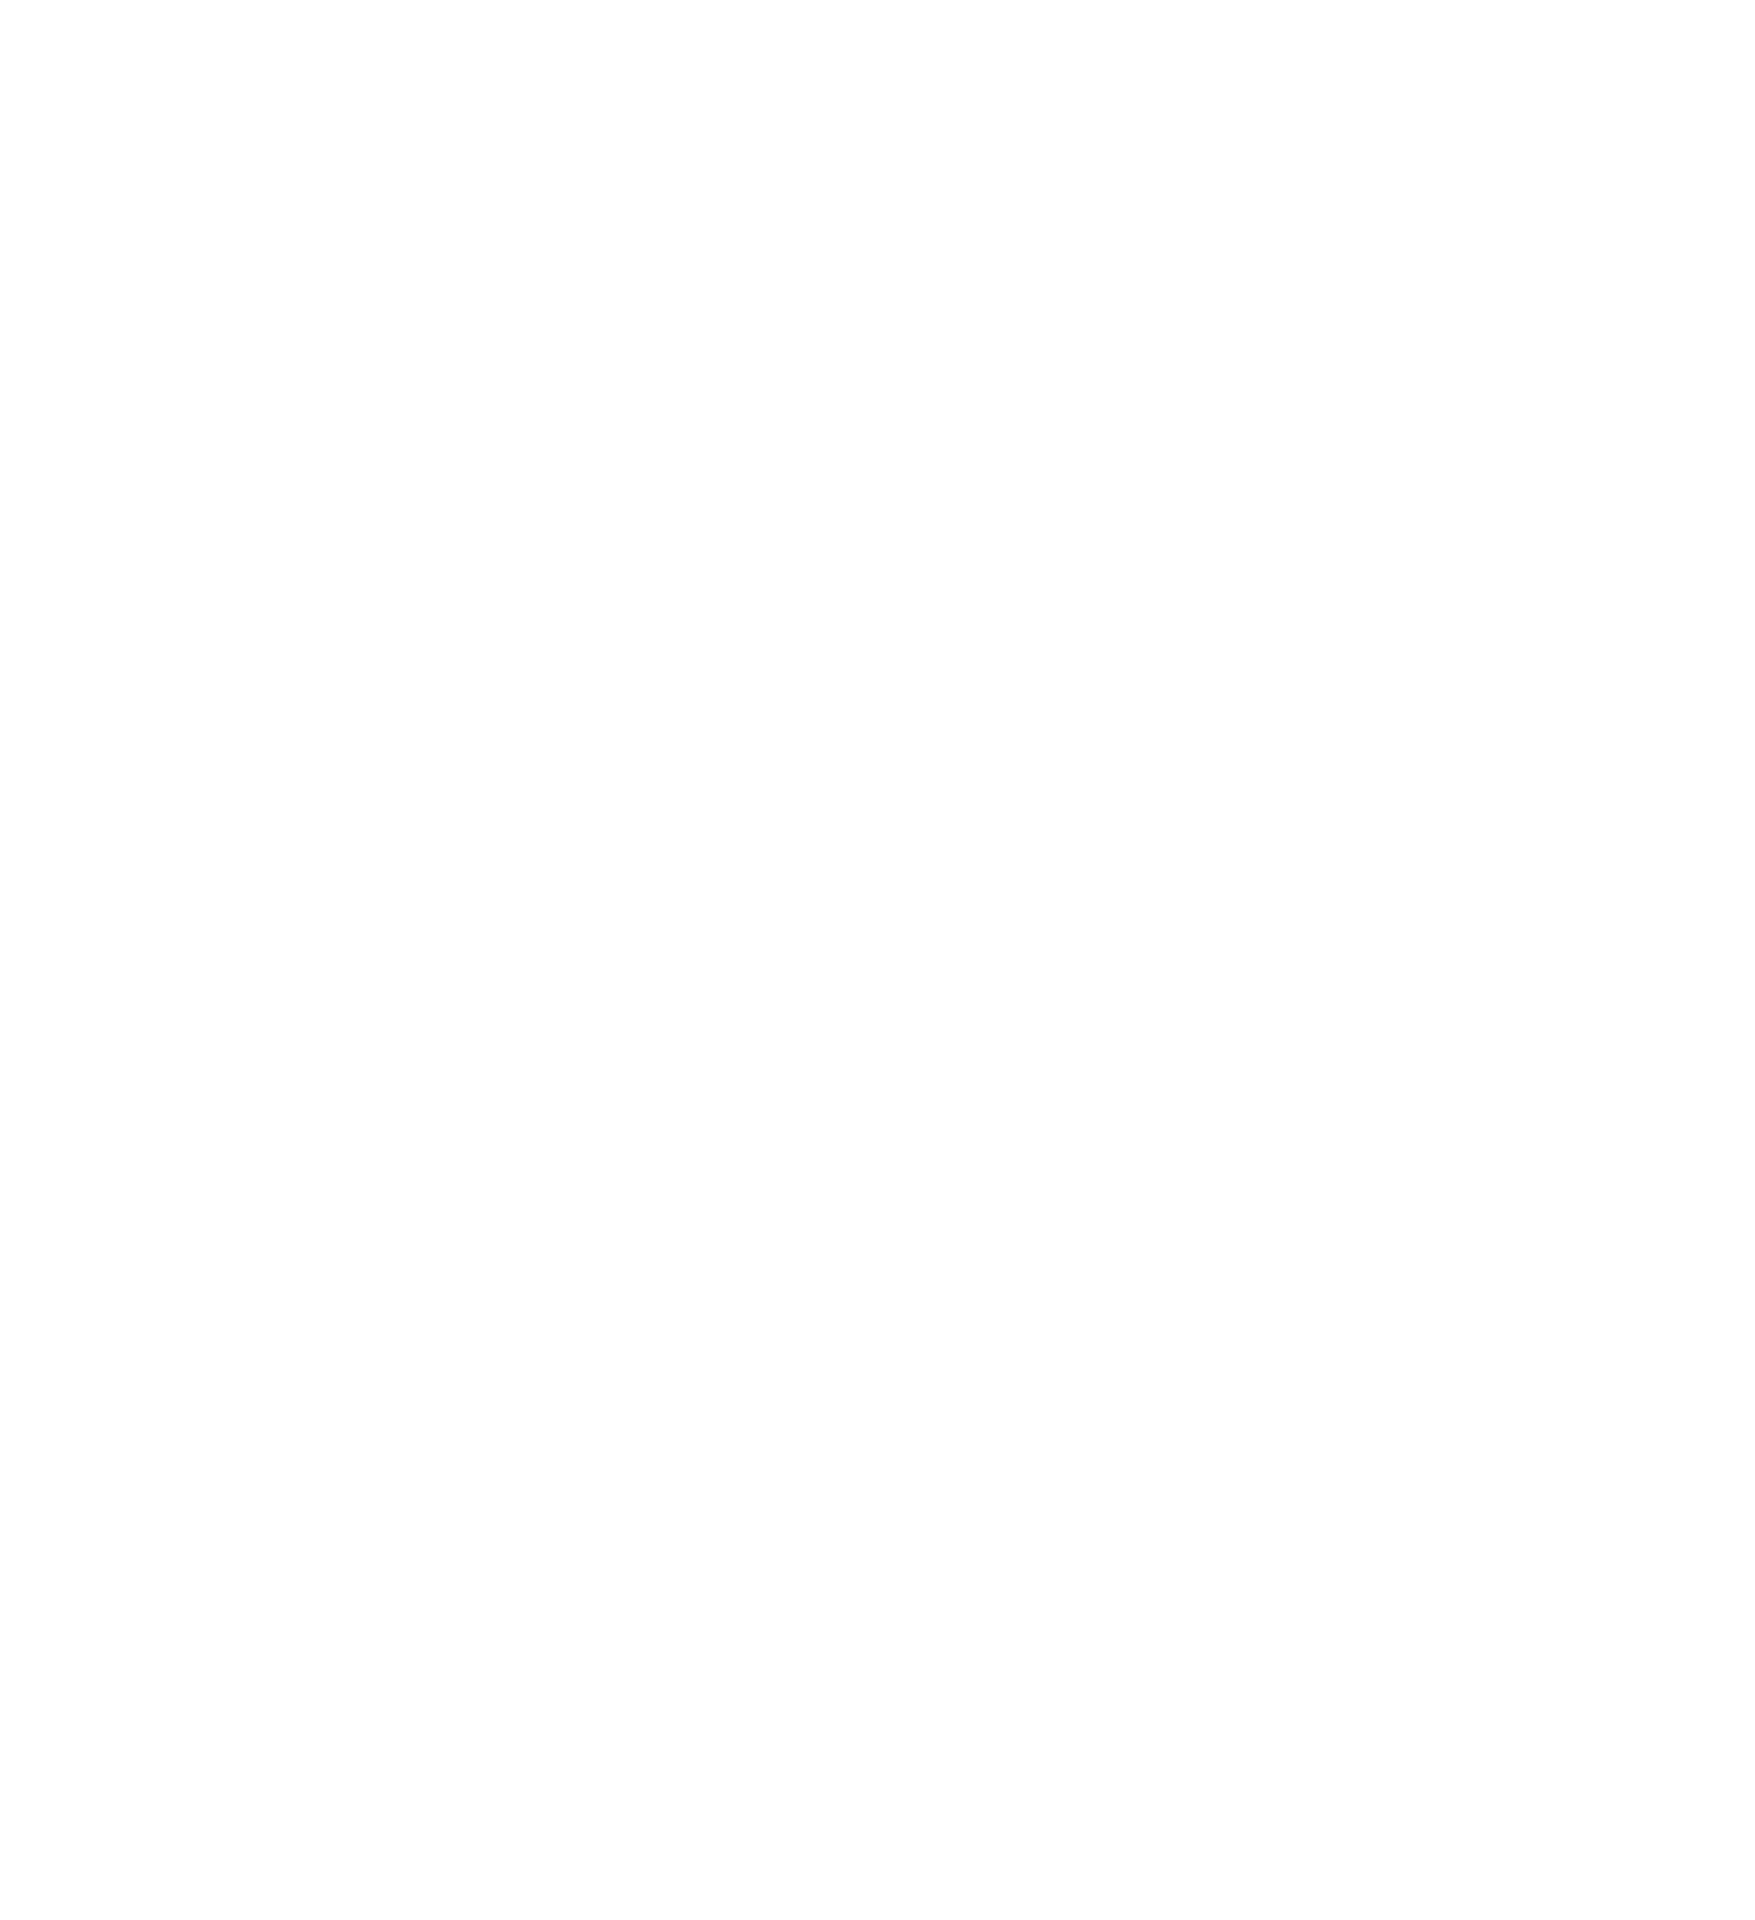 collins quarter at forsyth logo